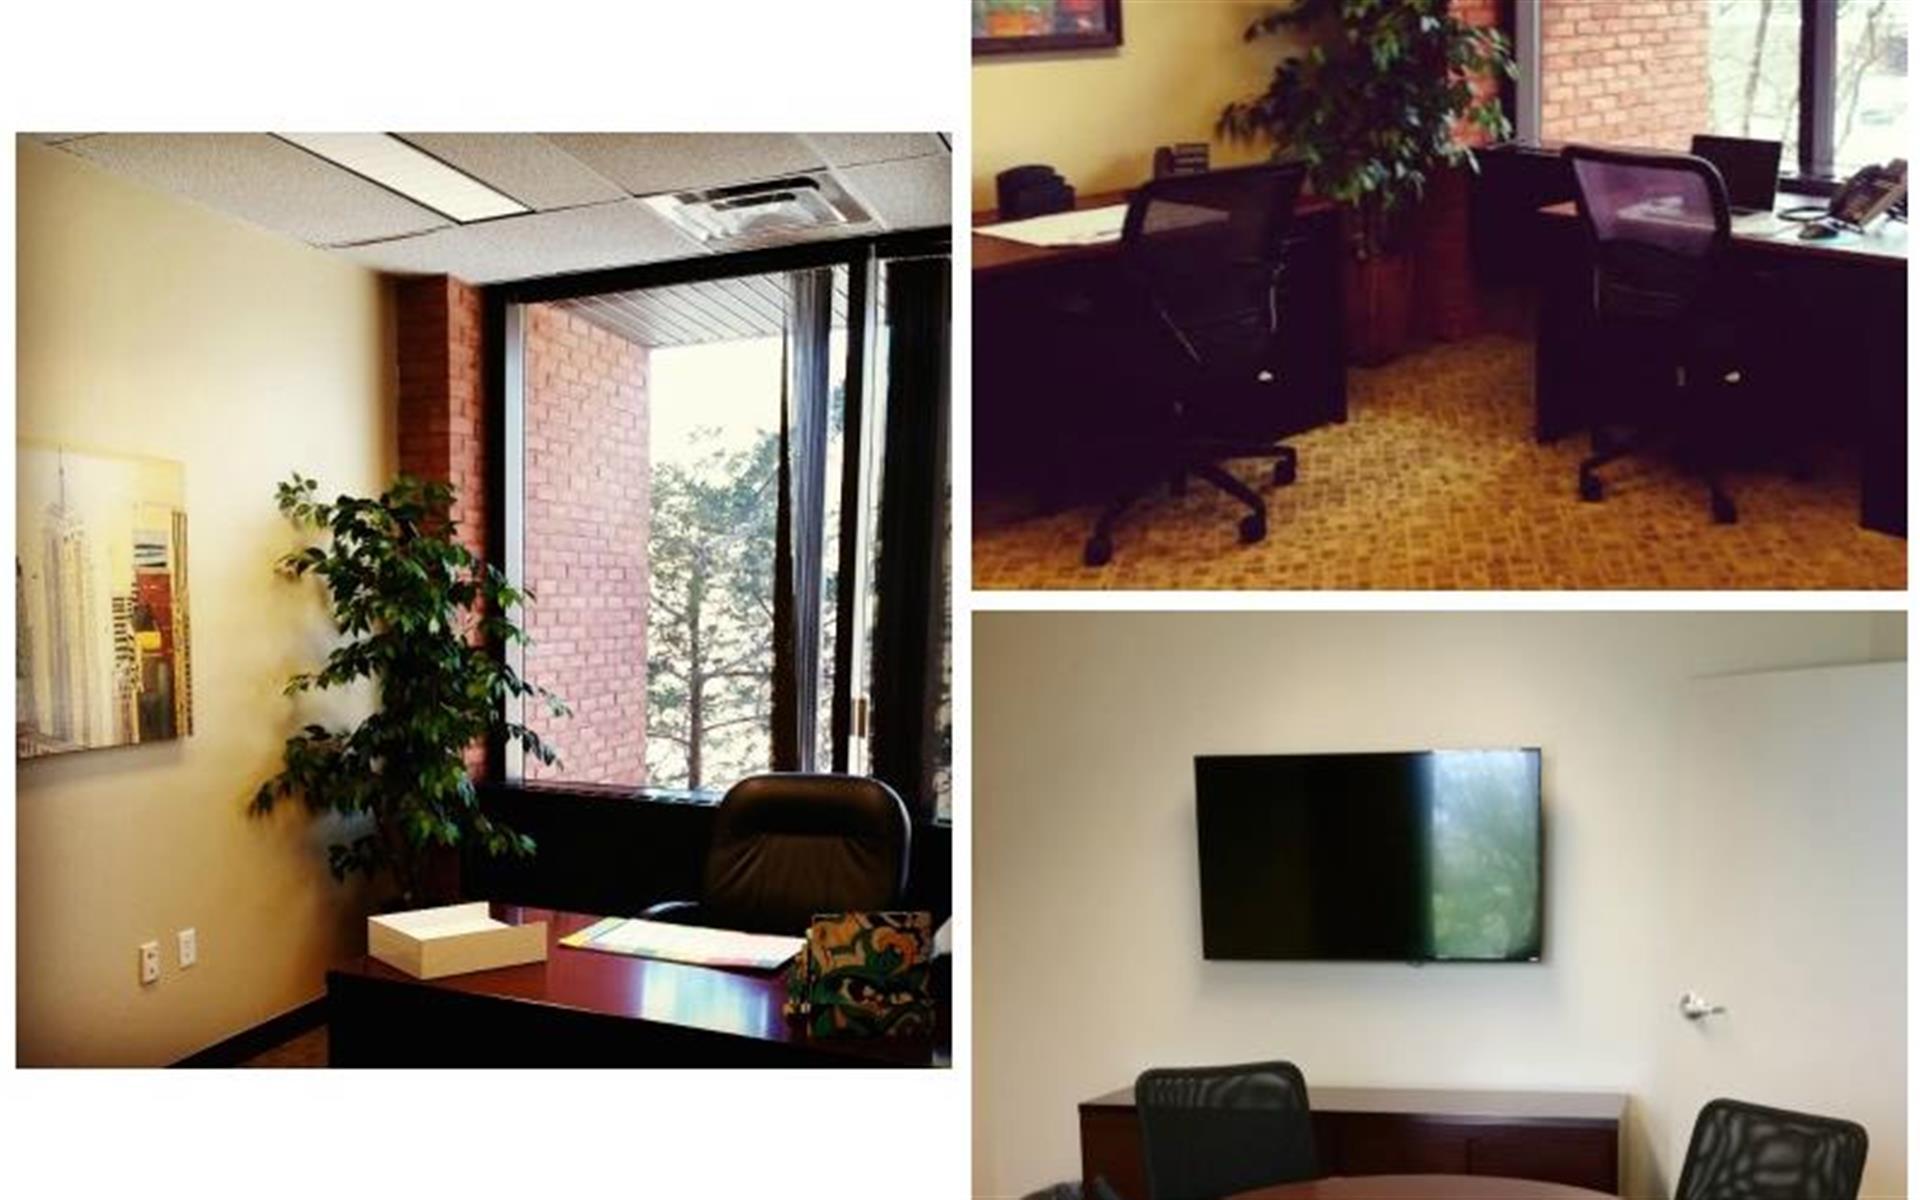 Highland-March Workspaces, Mansfield - Suite 301